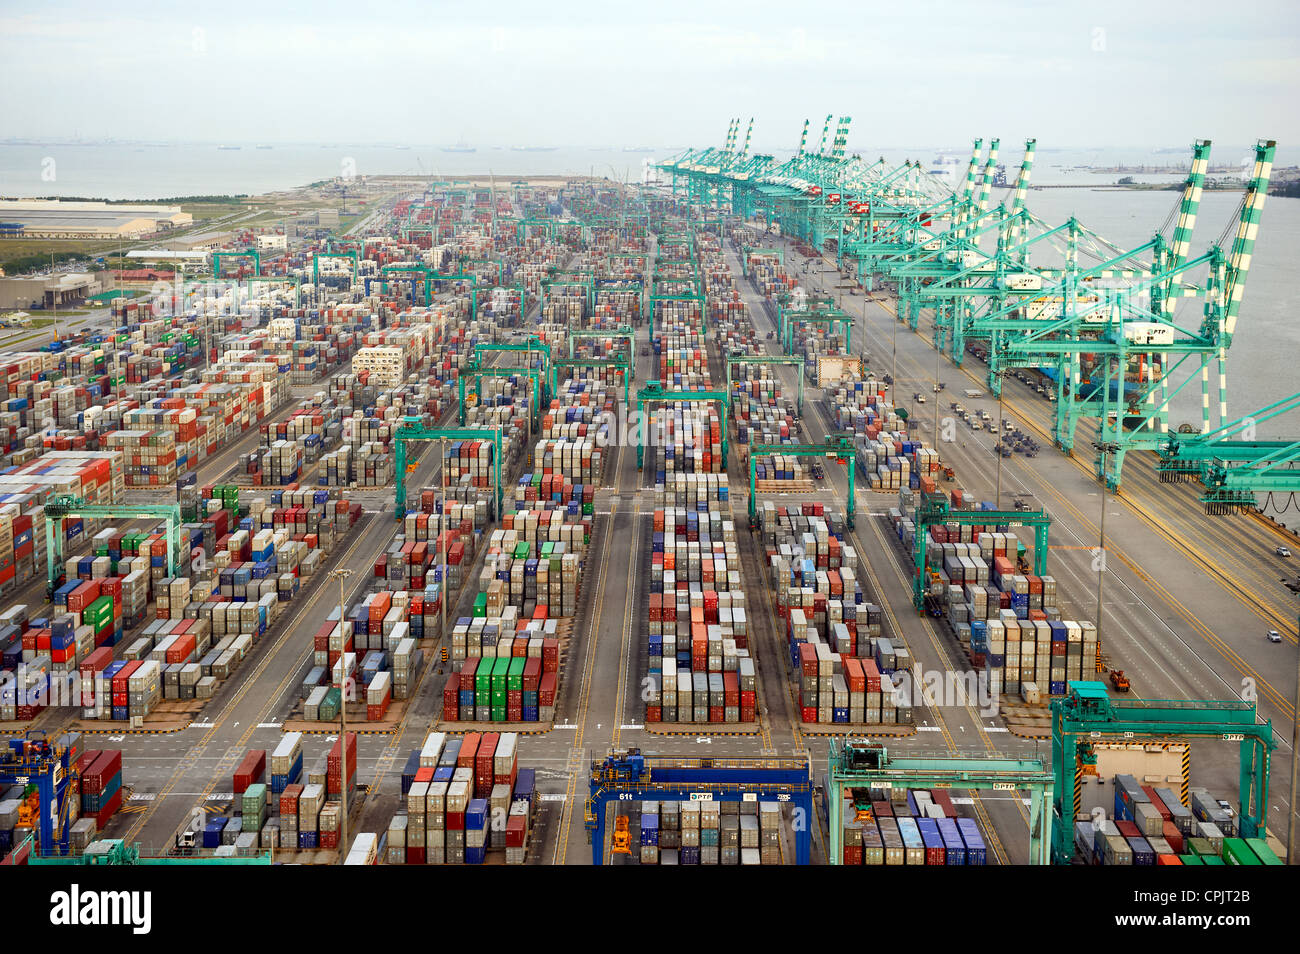 A container terminal shipping port in Johor, Malaysia. - Stock Image